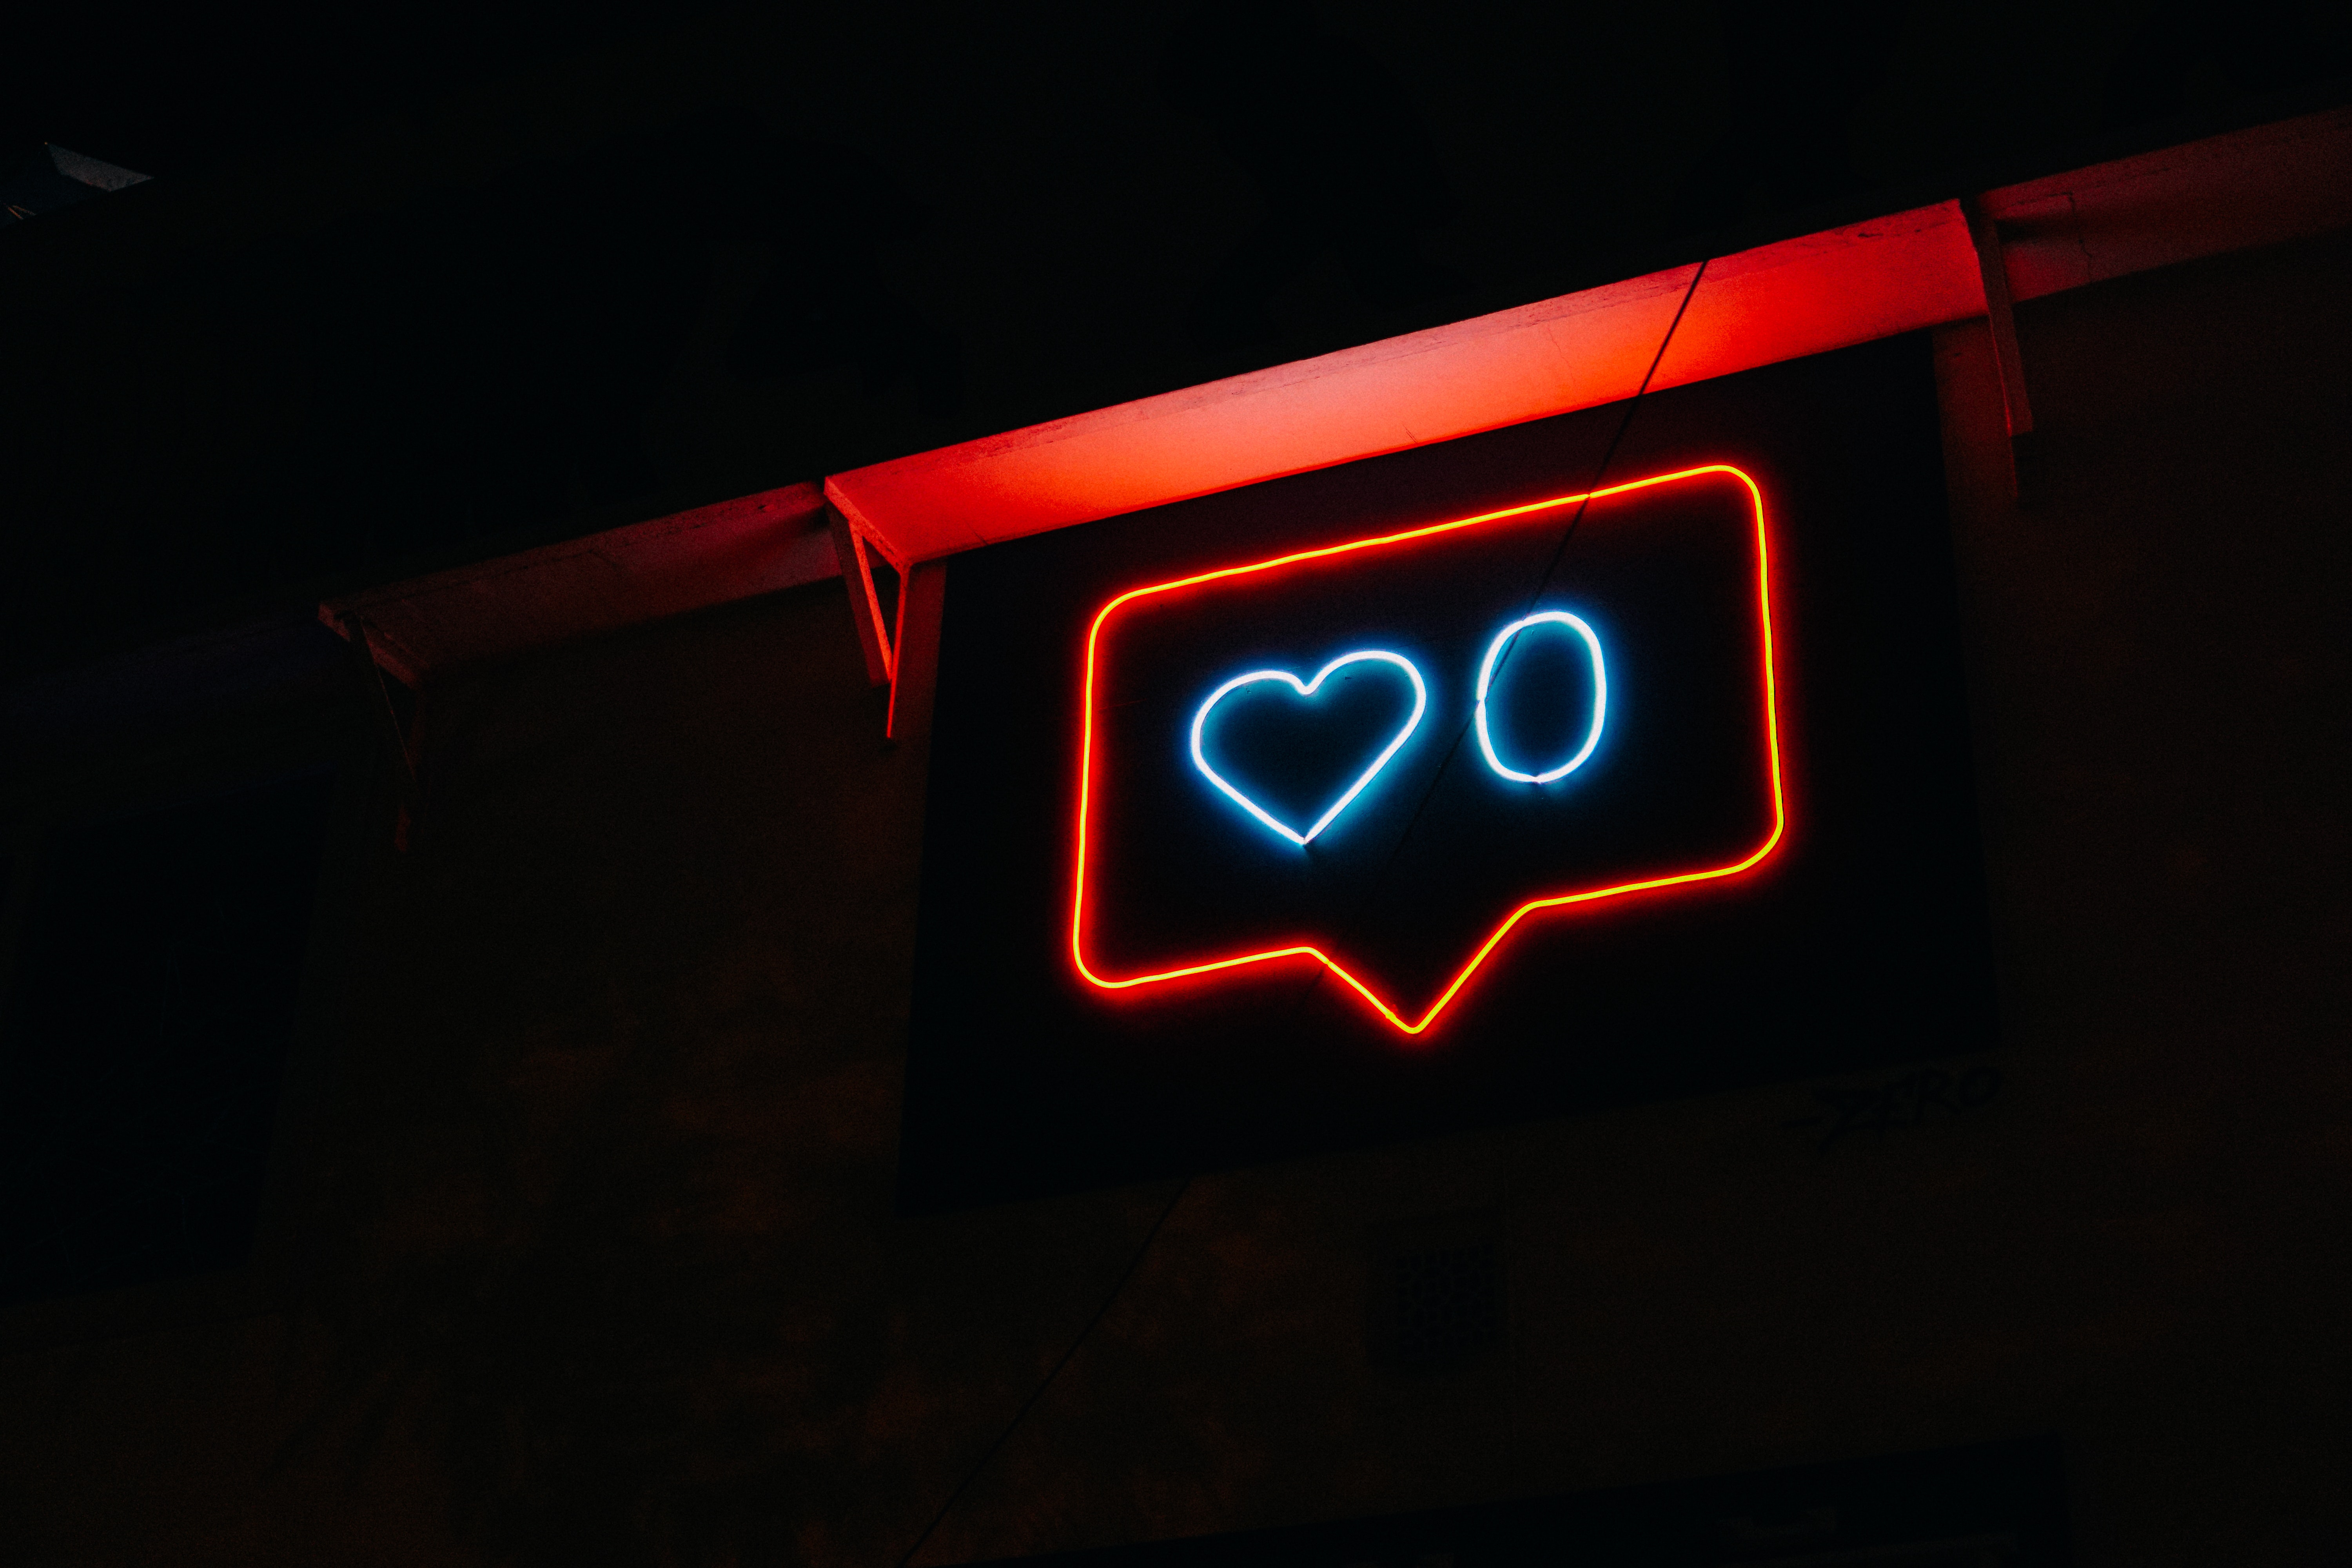 heart-and-zero-neon-light-signage-2694434